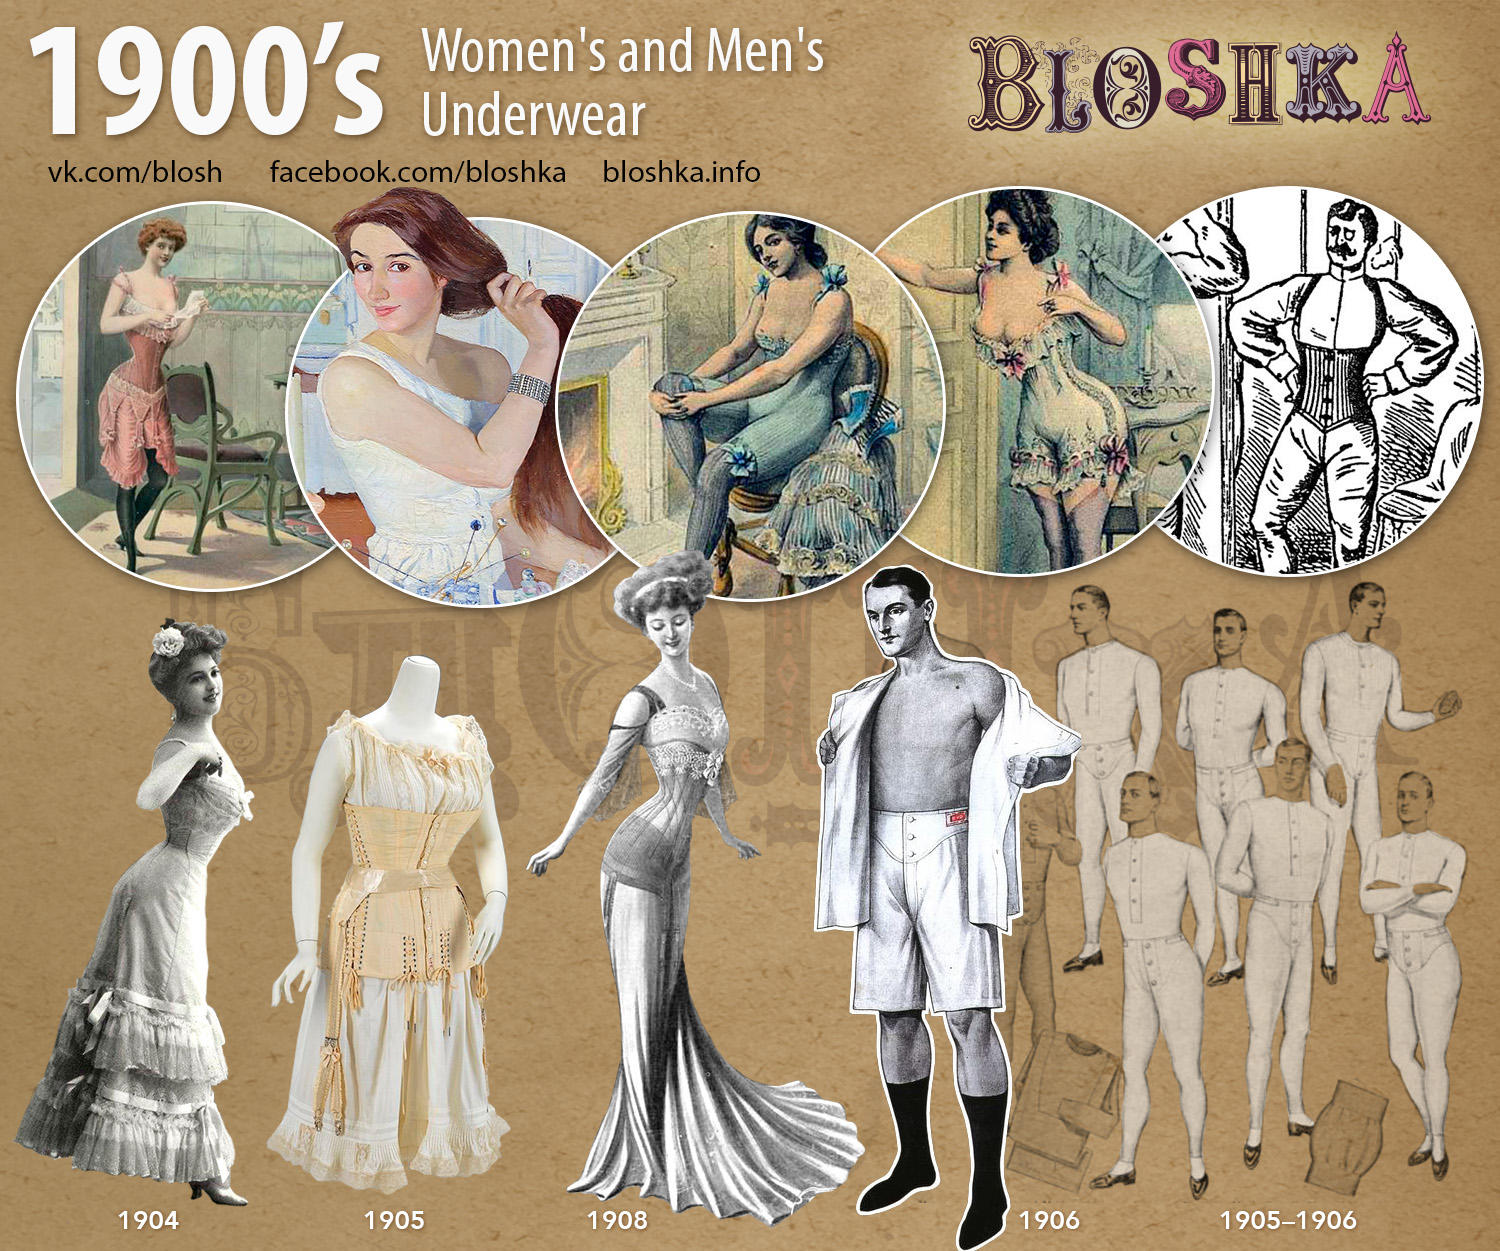 152f967b9d01 Women's and men's, headdresses and hairstyles, underwear, swimsuits and  bathing suits